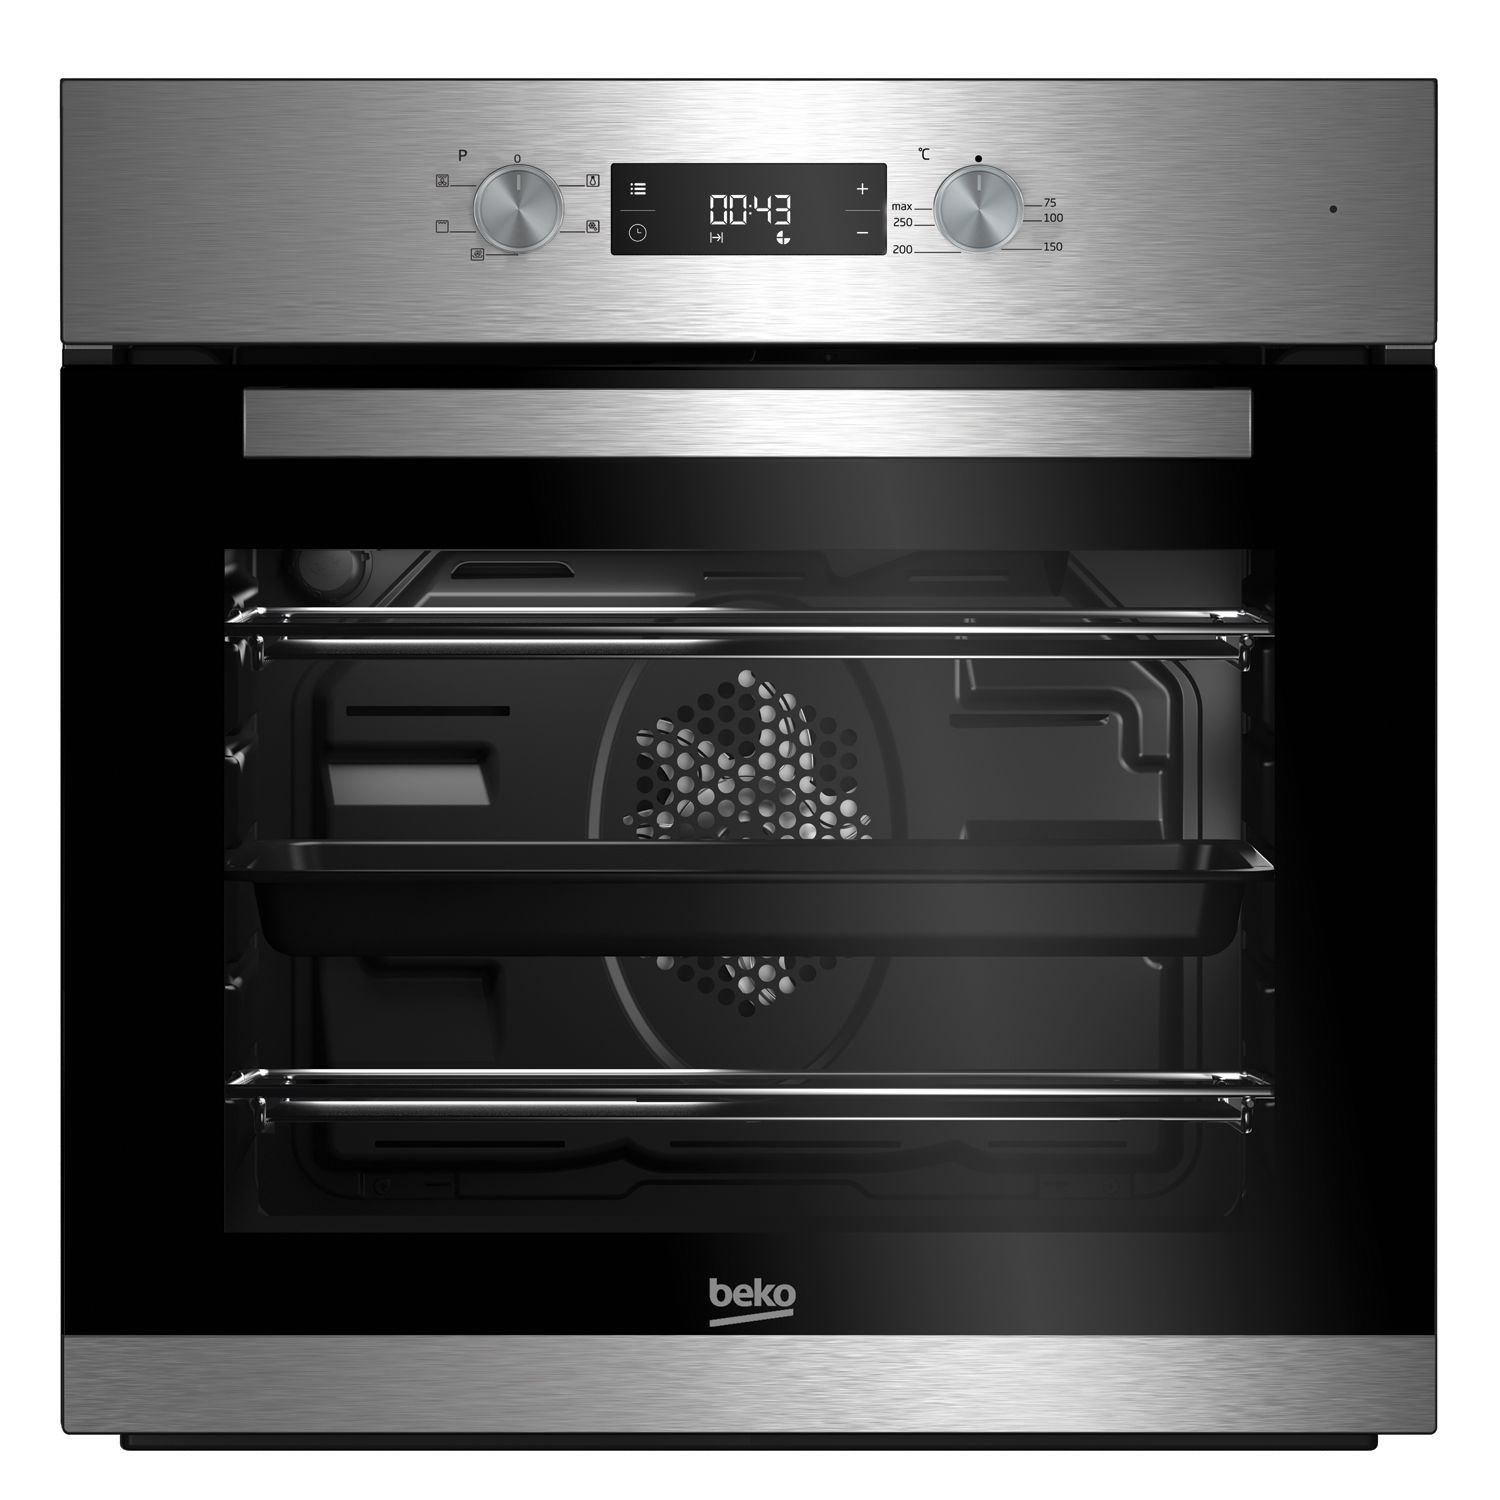 Uncategorized Beko Kitchen Appliances beko bif22300xd stainless steel electric single fan oven departments diy at bq